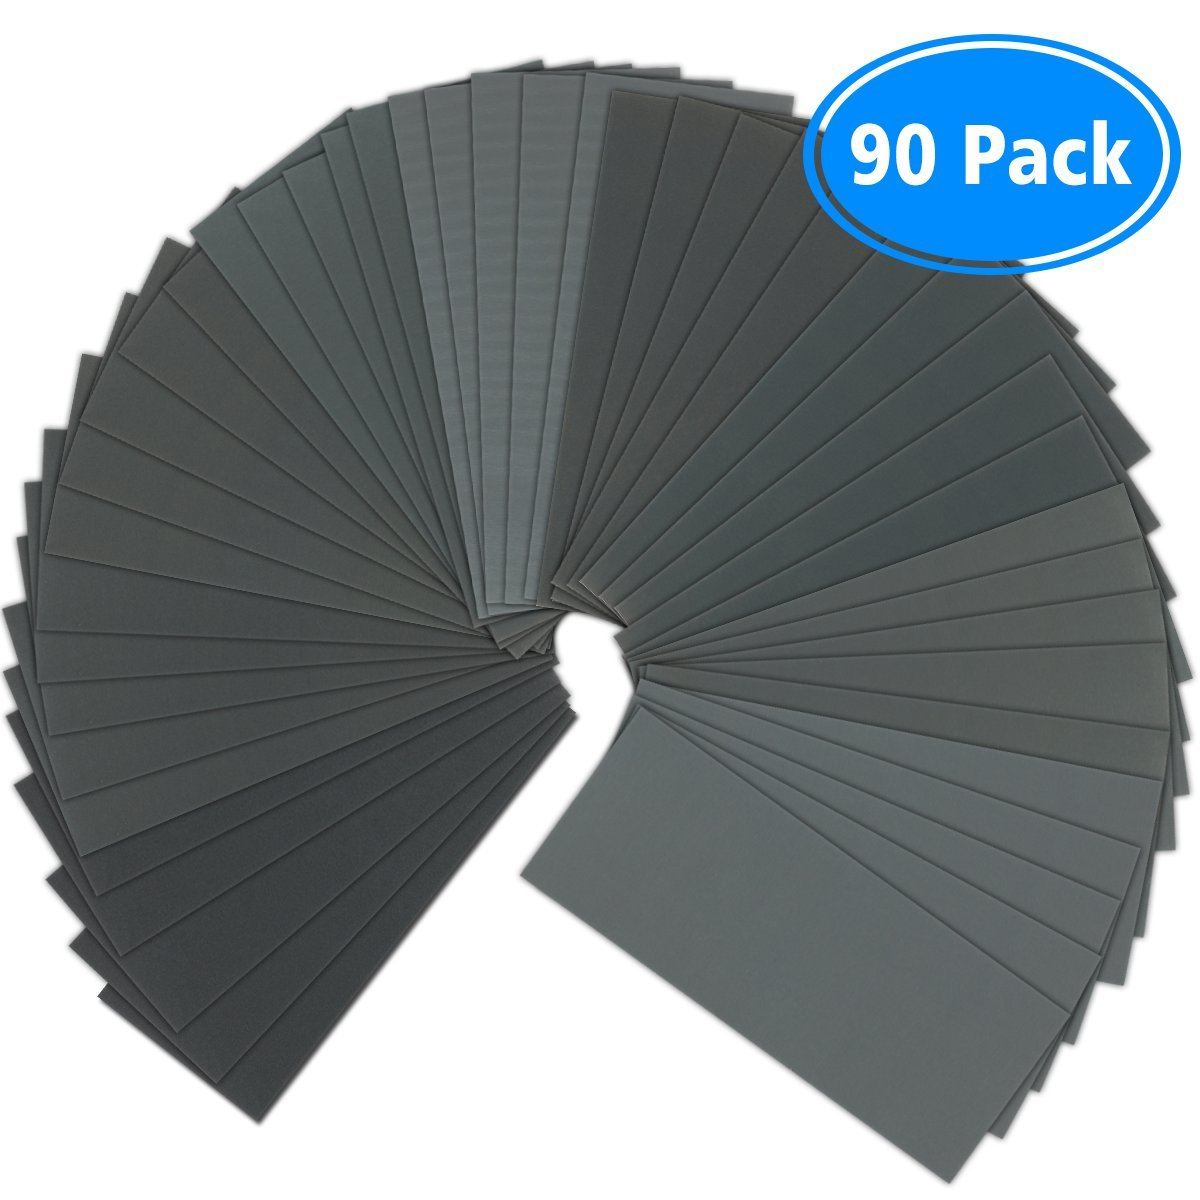 Sandpaper, 90 Pcs 400 to 3000 Grit Wet Dry Sandpaper Assortment 9x3.6 Inch for Automotive Sanding - Wood Furniture Finishing - Wood Turing Finishing and More by VERONES